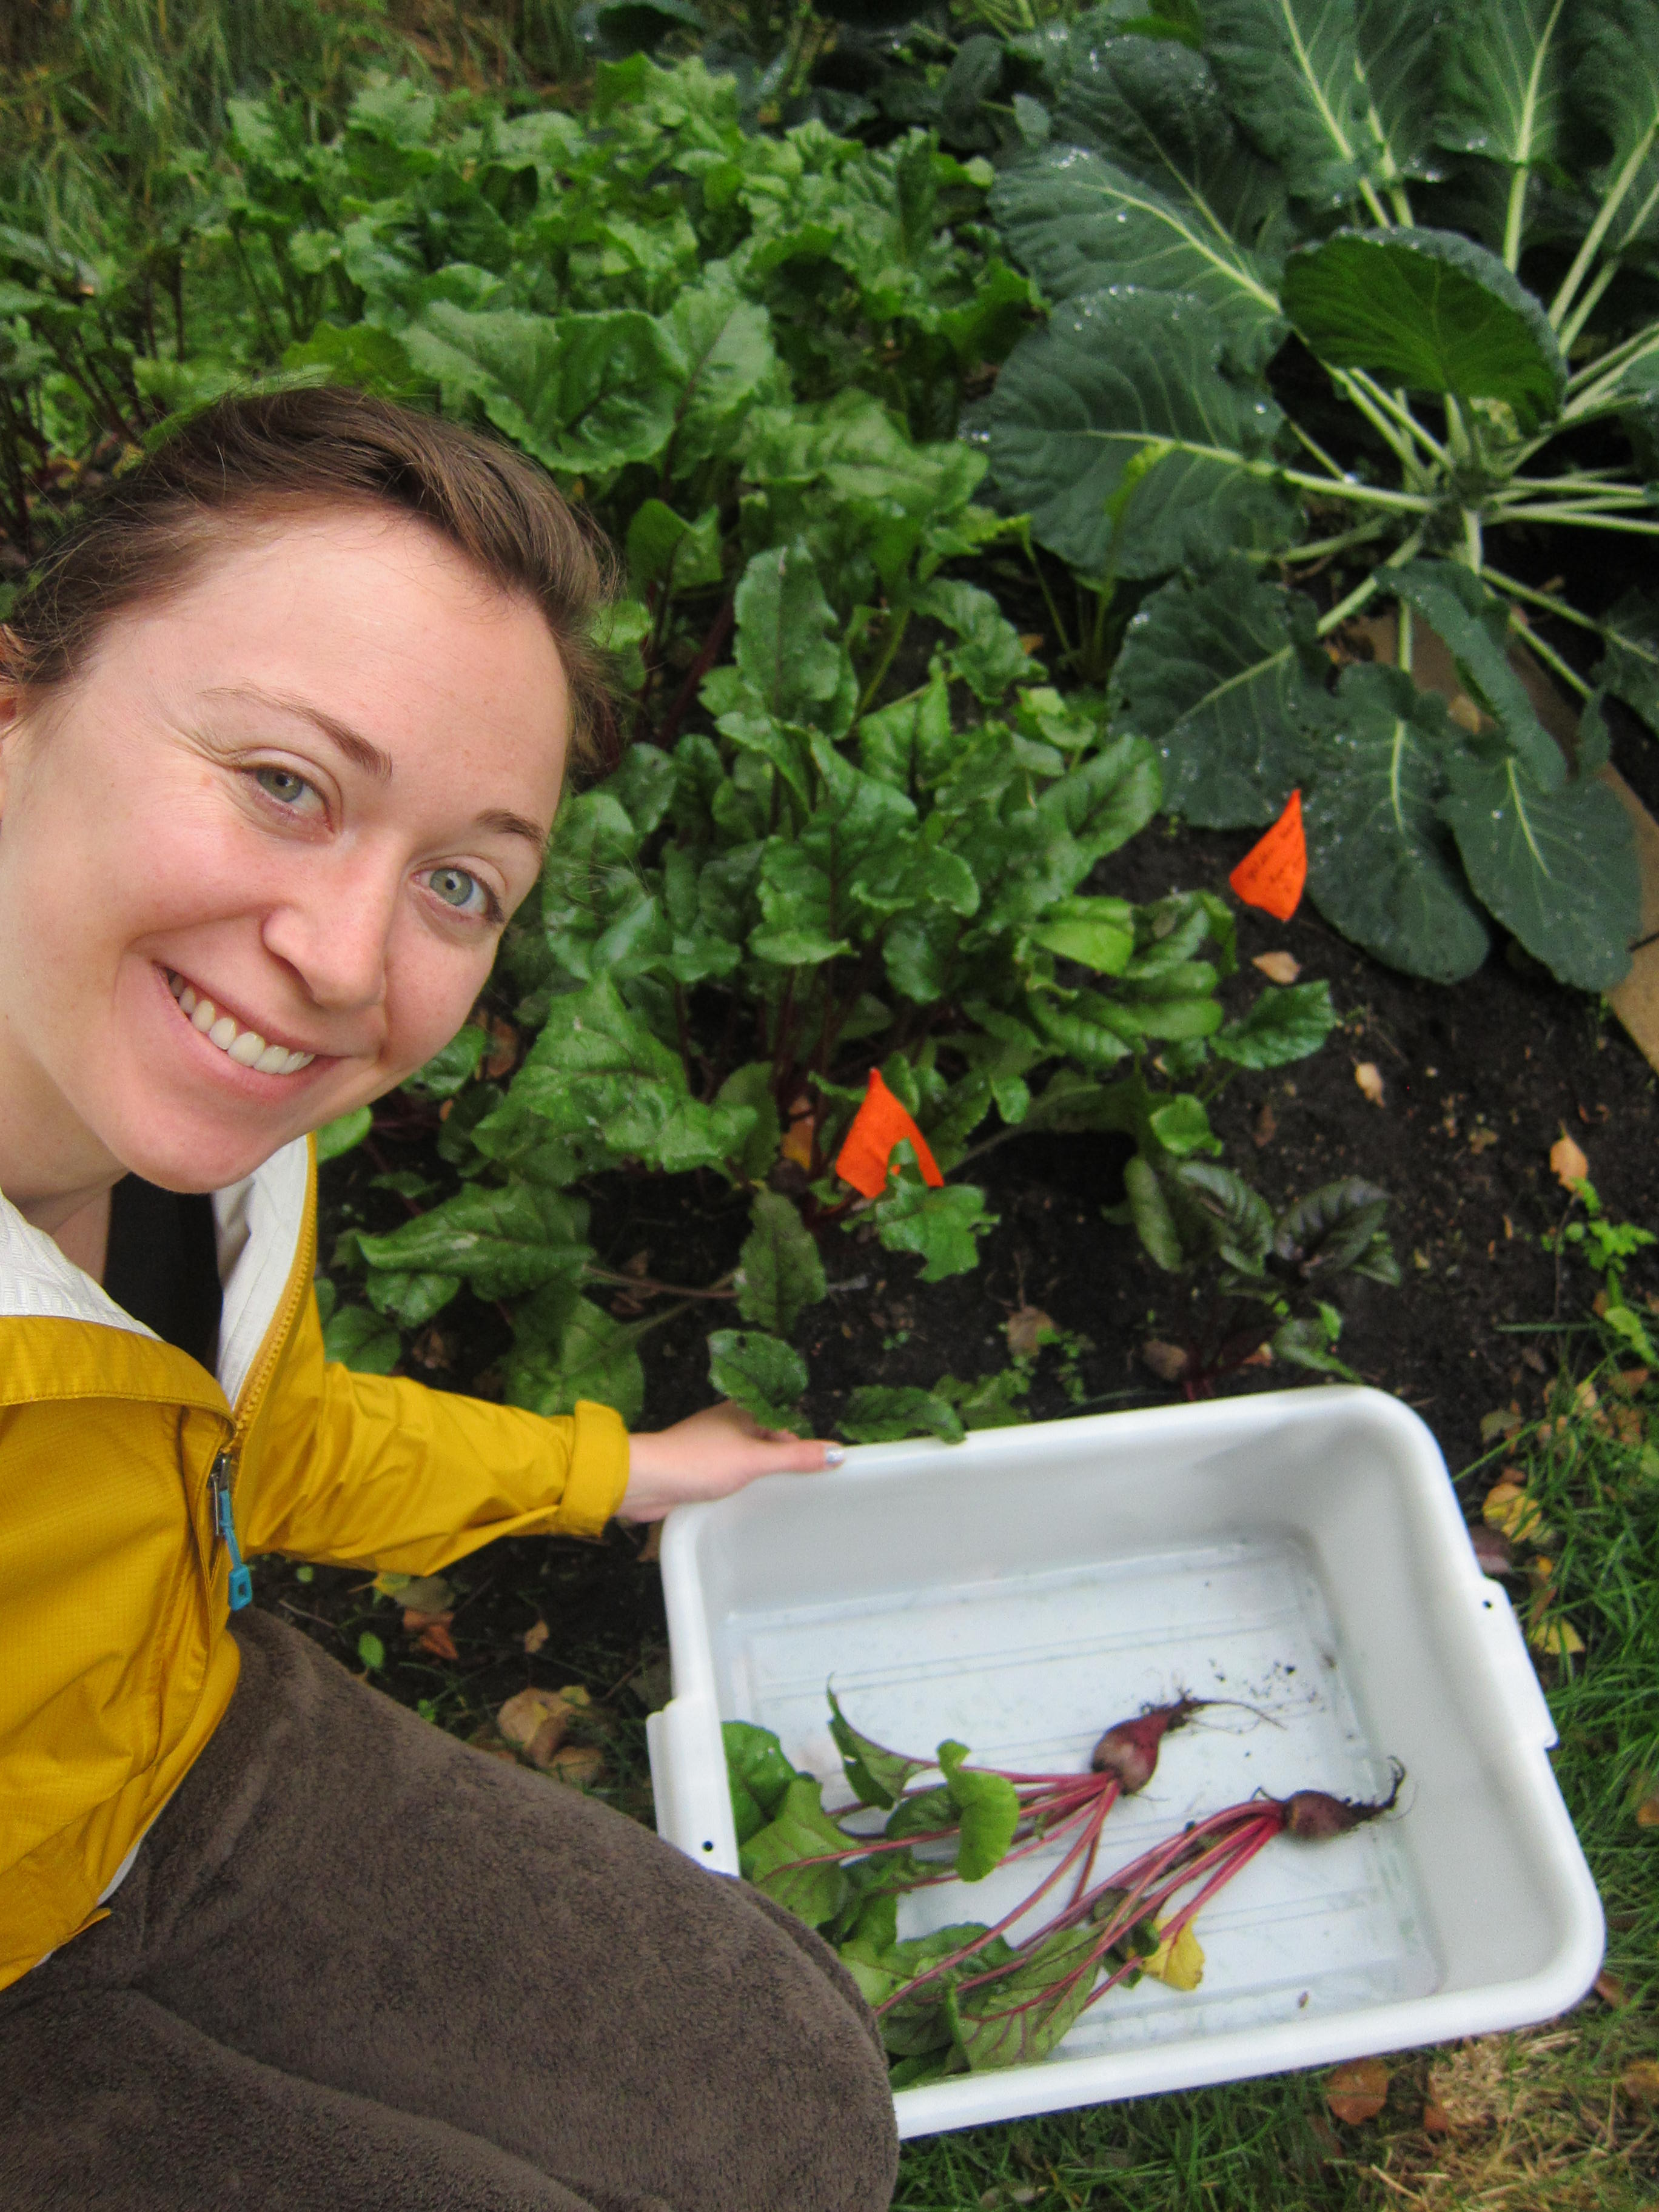 Ashley Taborsky harvesting beets from her garden